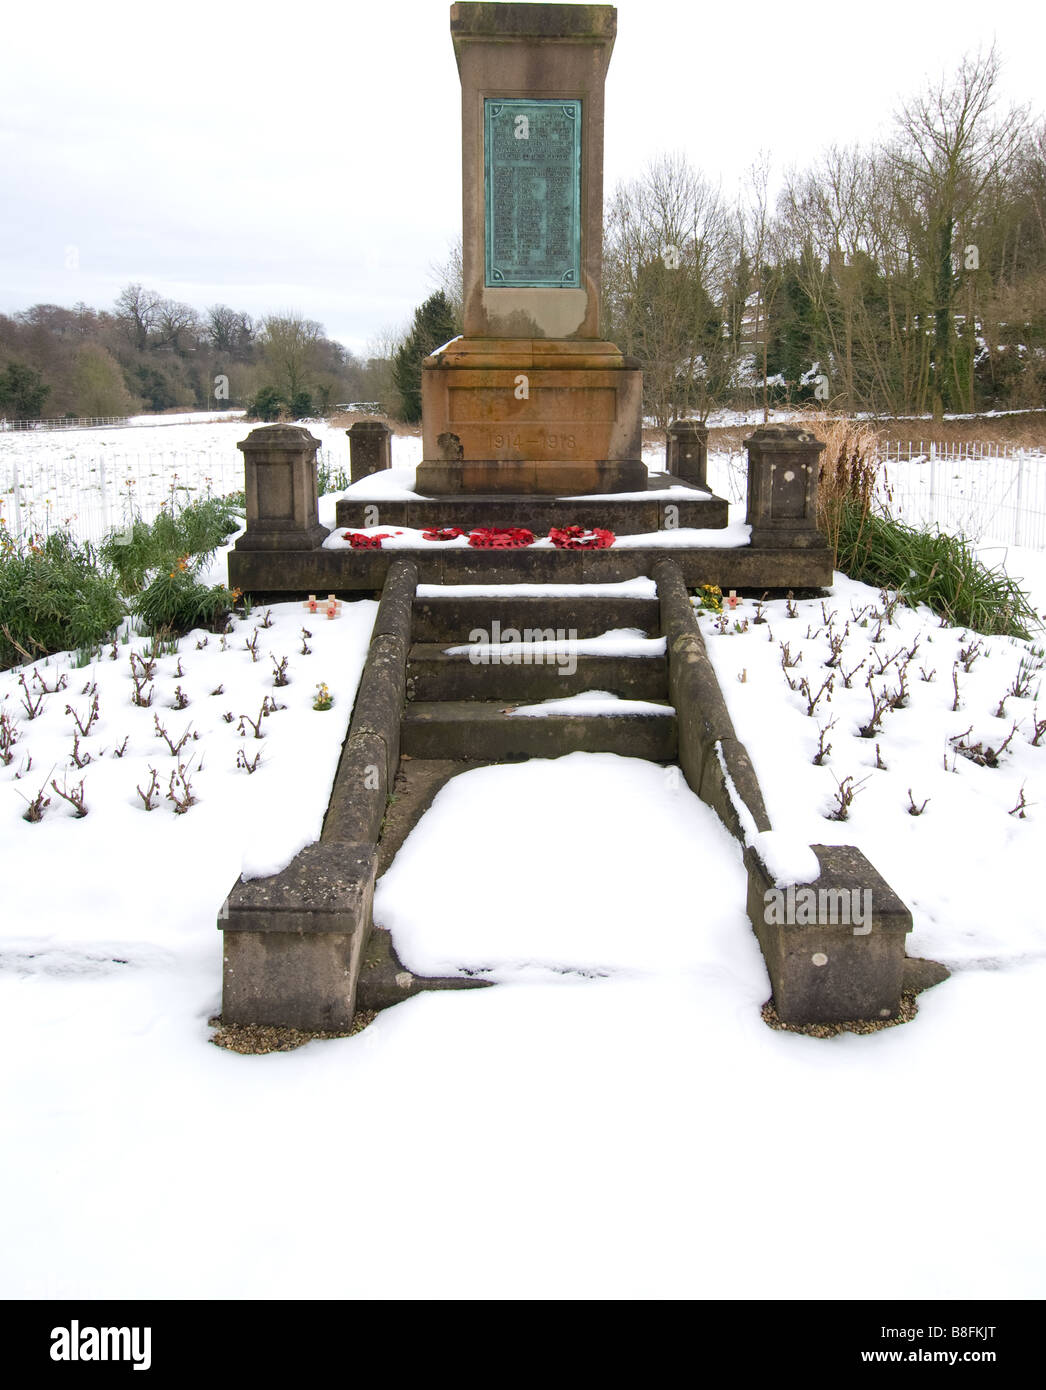 Poppy wreaths laid at a war memorial with a resent snow fall. - Stock Image